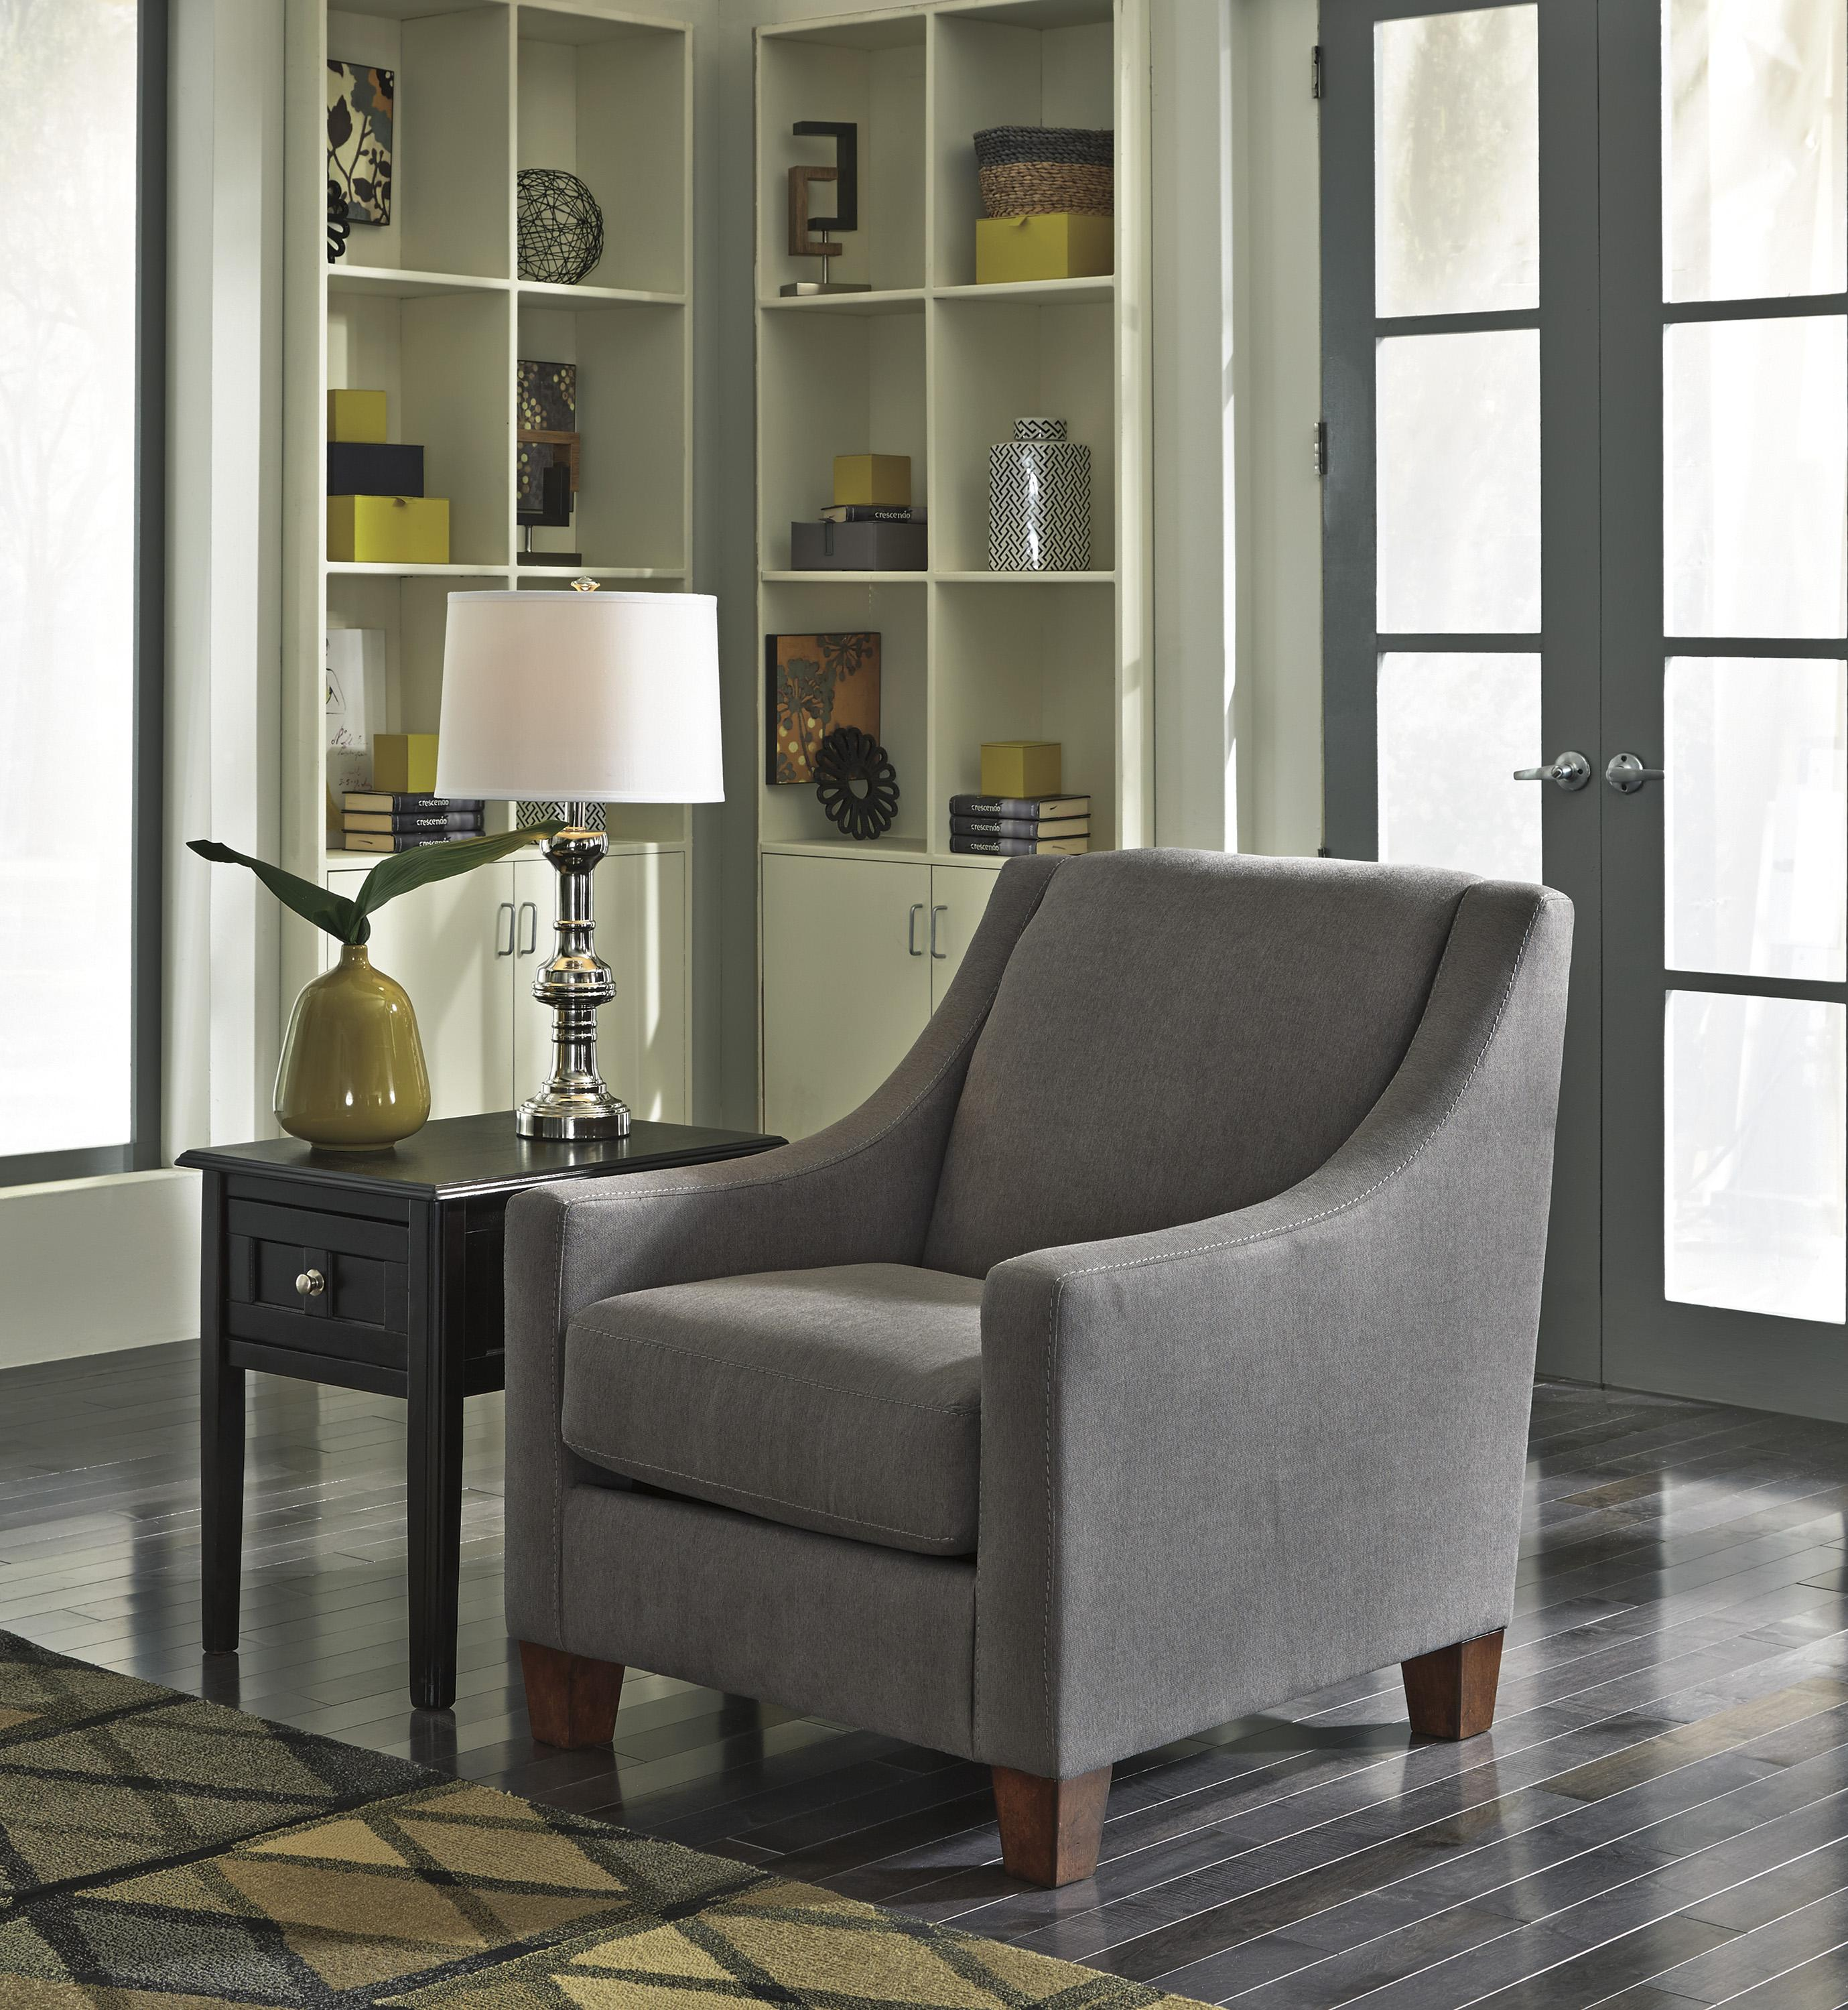 Benchcraft By Ashley Maier Charcoal Contemporary Accent